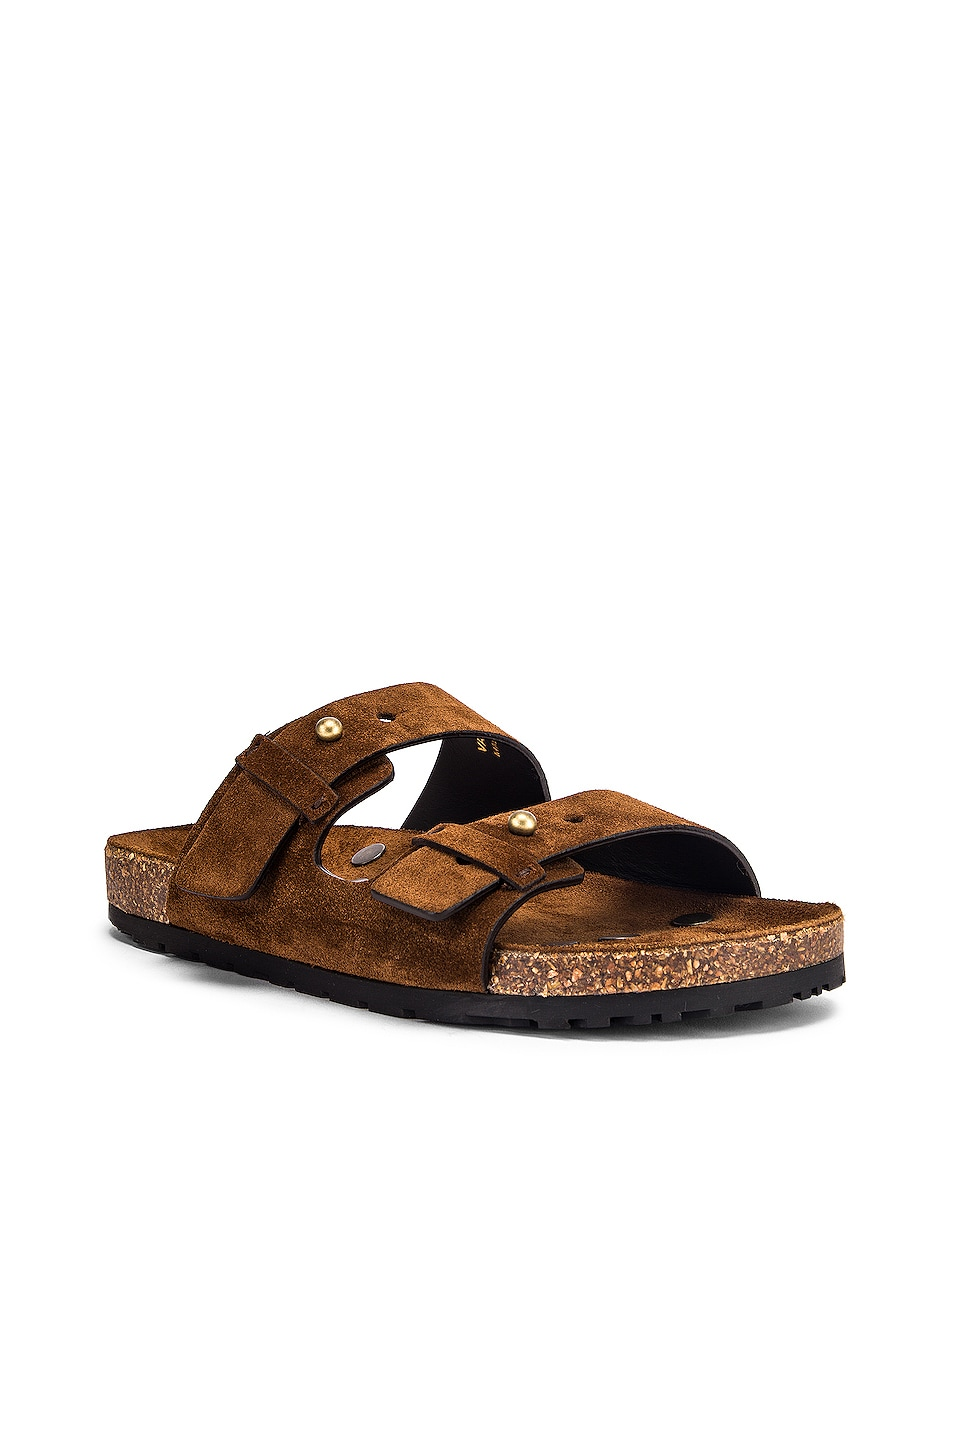 Image 2 of Saint Laurent Jimmy Buckle Sandals in Land